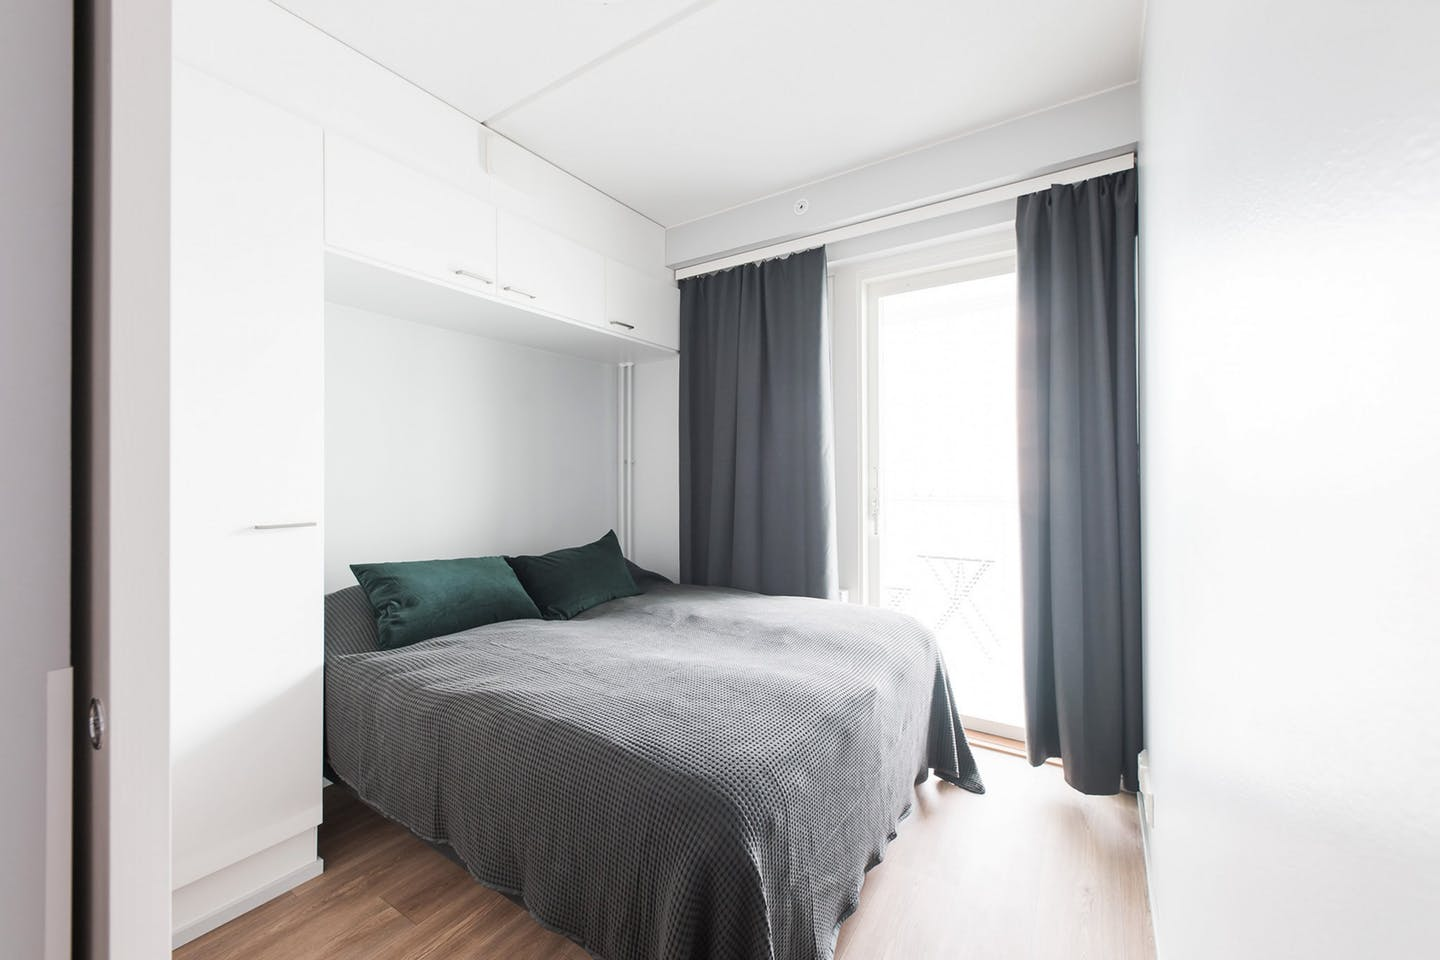 Bedroom at Neilikkatie Apartments